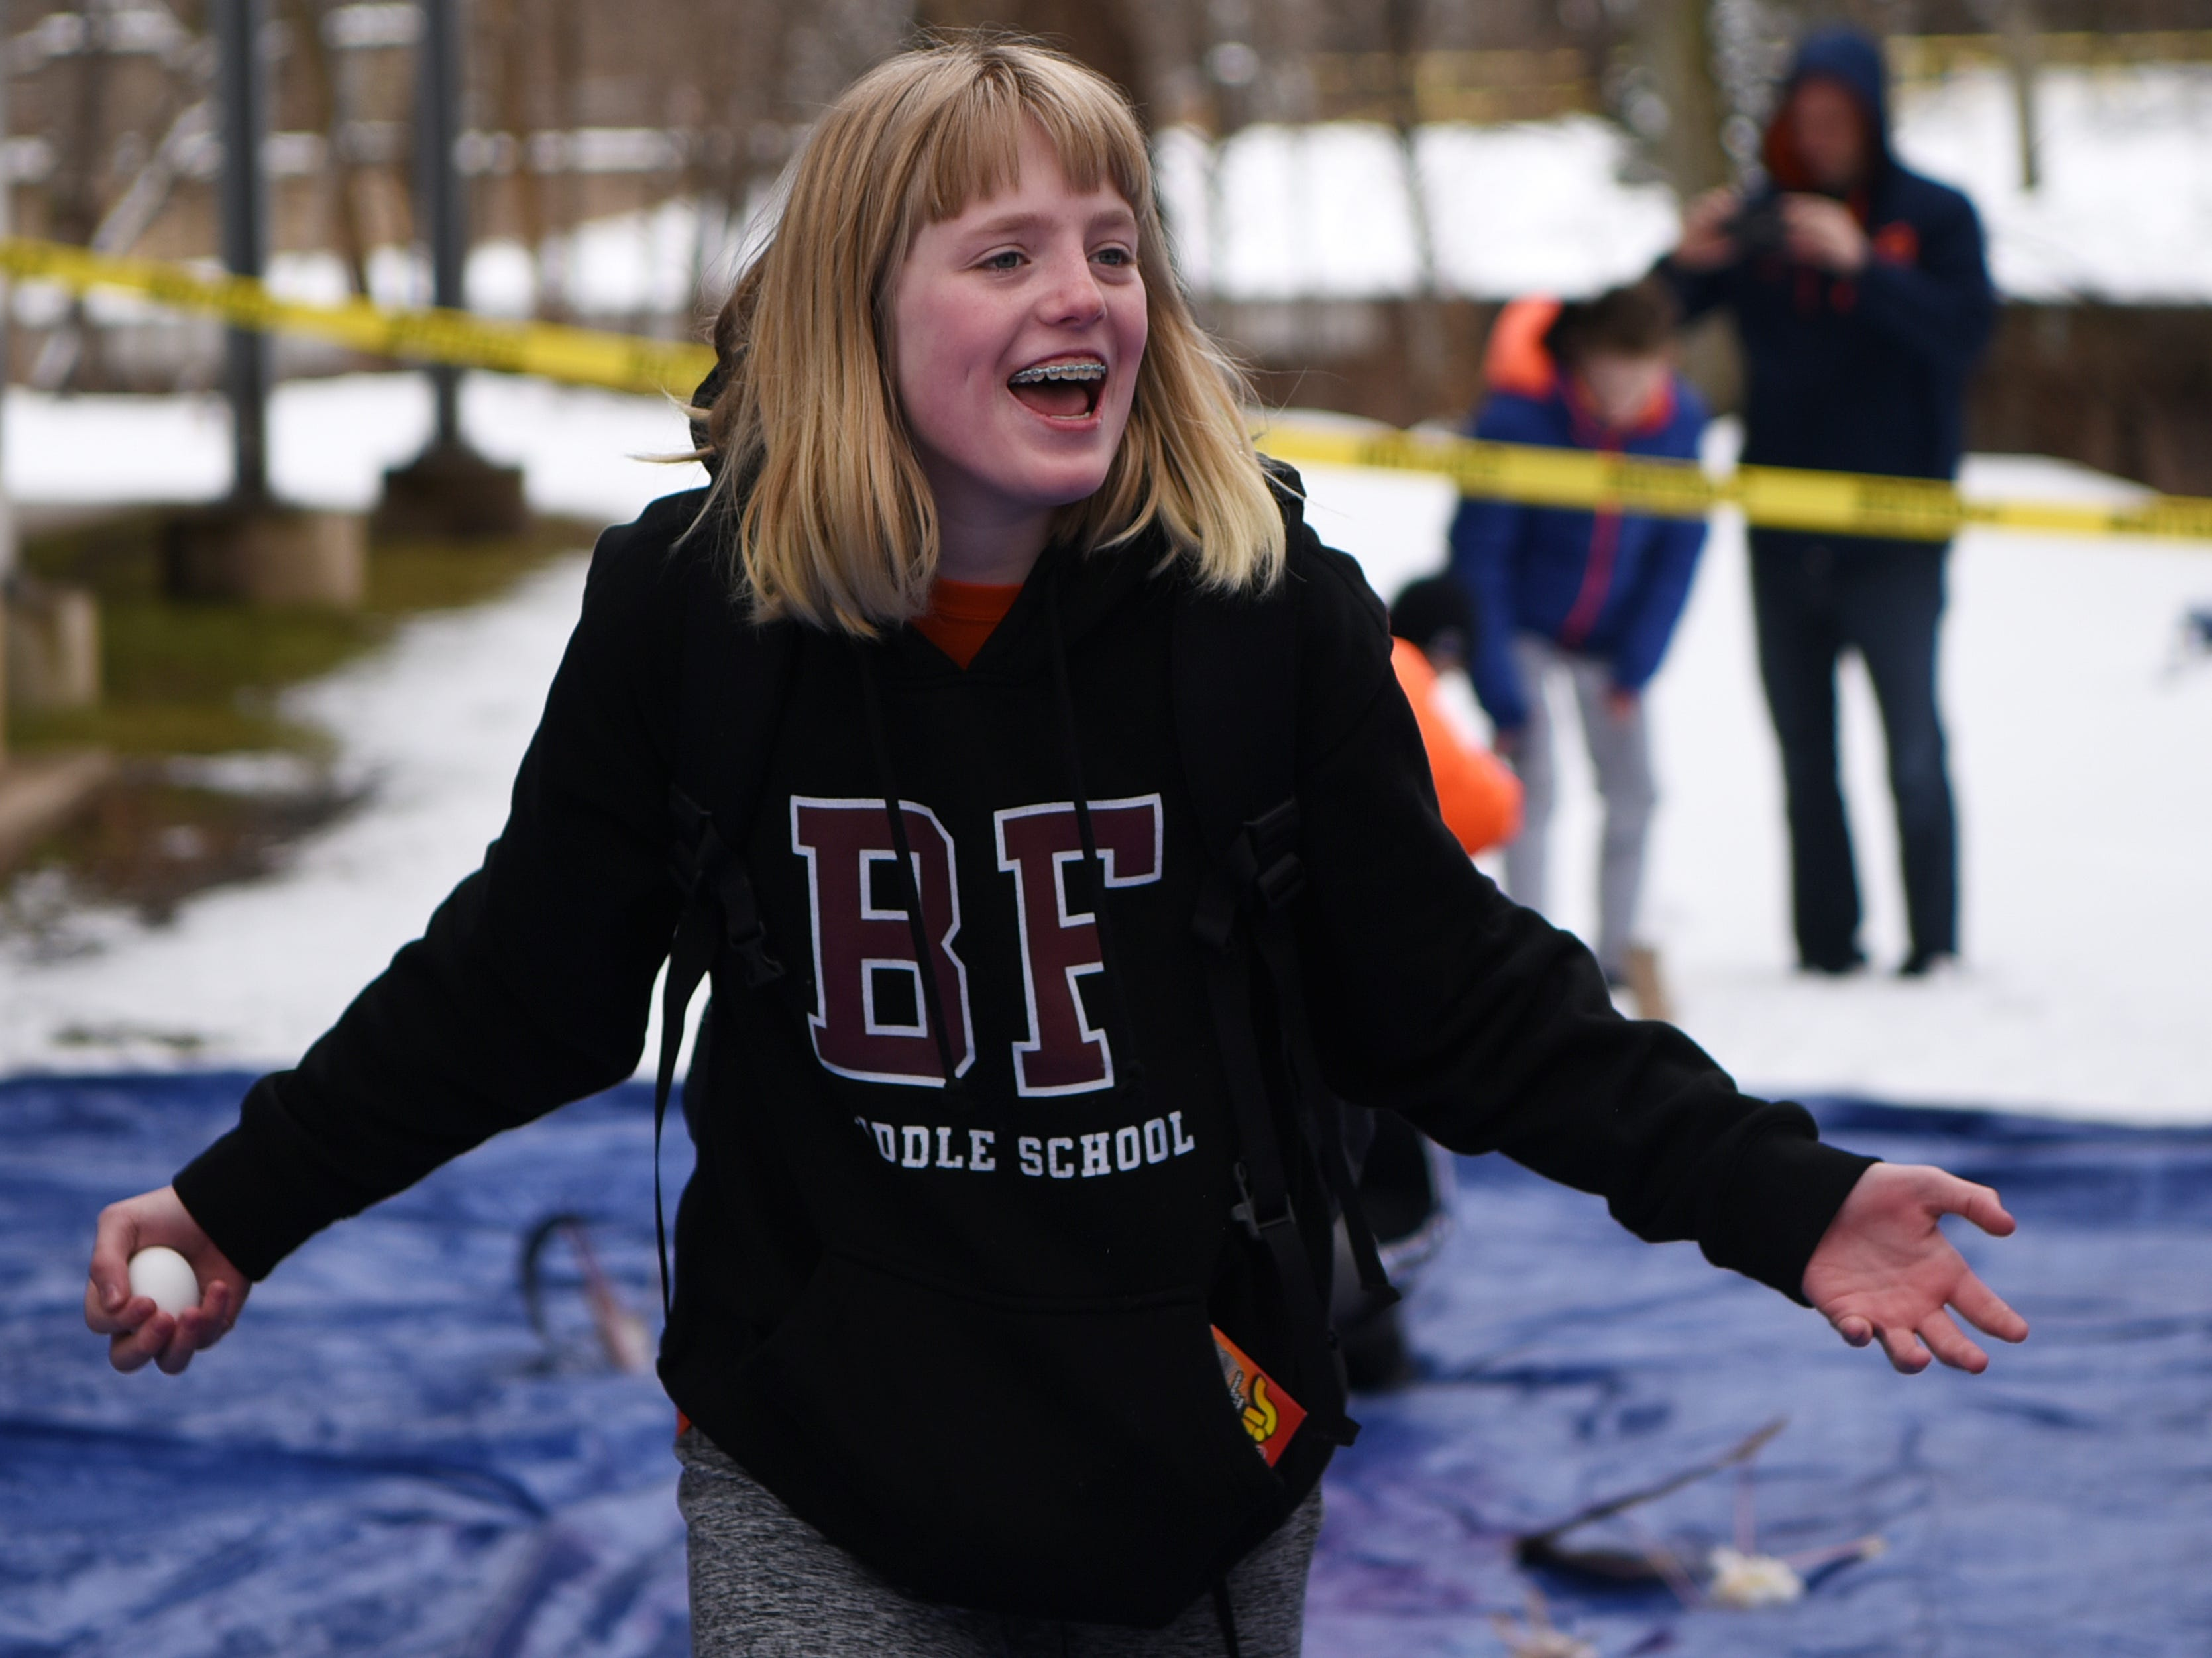 Ella Sands, 12,  reacts after her egg lands safely during the Egg Drop. Children must create a device that will prevent their egg from breaking from a 30 foot drop. This is one of many hands on activities during Super Science Saturday held at Ridgewood High School in Ridgewood on Saturday March 2, 2019.